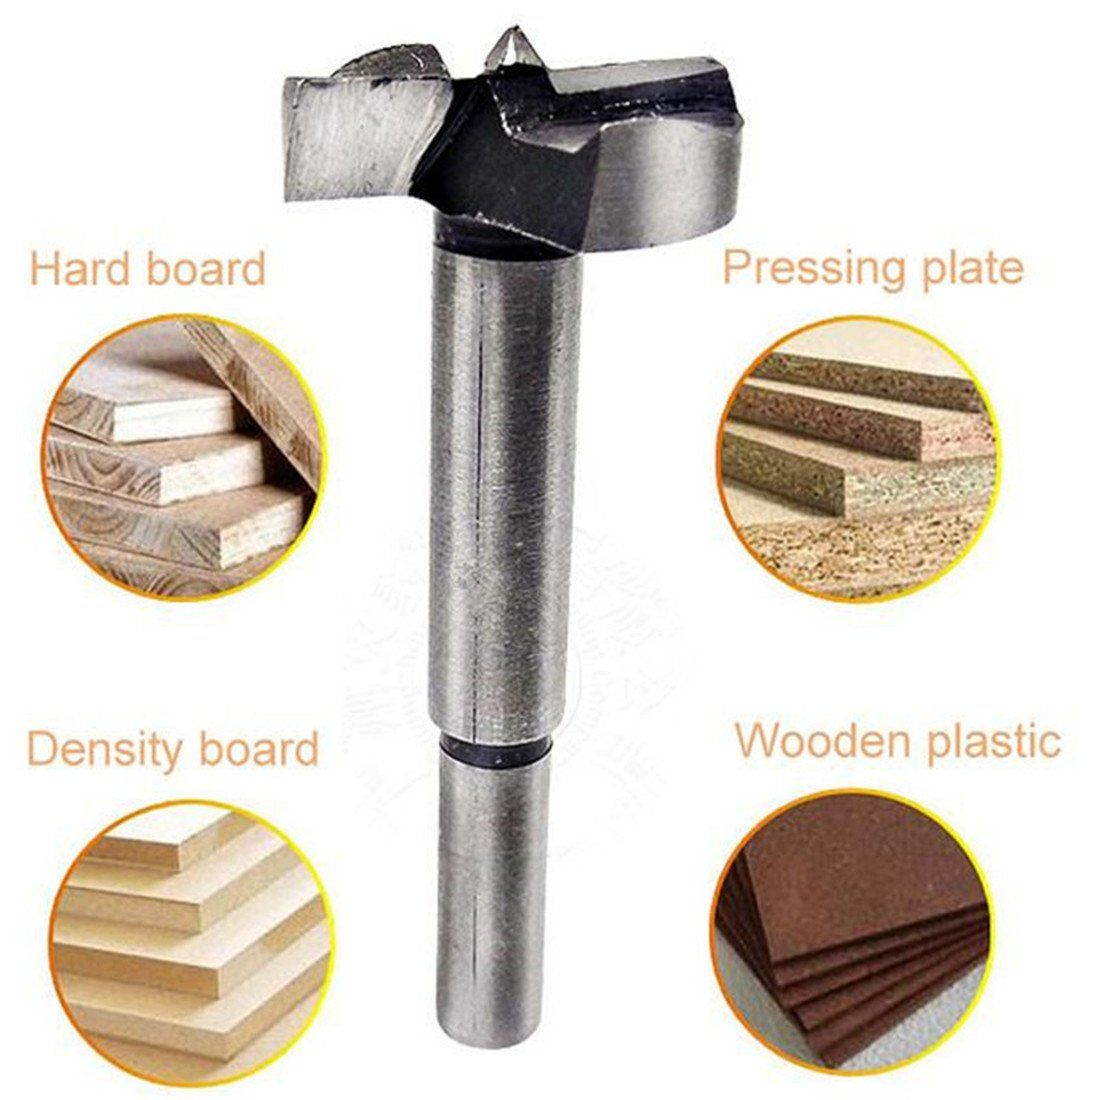 Forstner Wood Drill Bits Carpenter Flat Wing Drilling Reaming Hinge Woodworking Hole Saw Wooden Wood Cutter Core Wood Drill Bits Wood Cutter Woodworking Tools